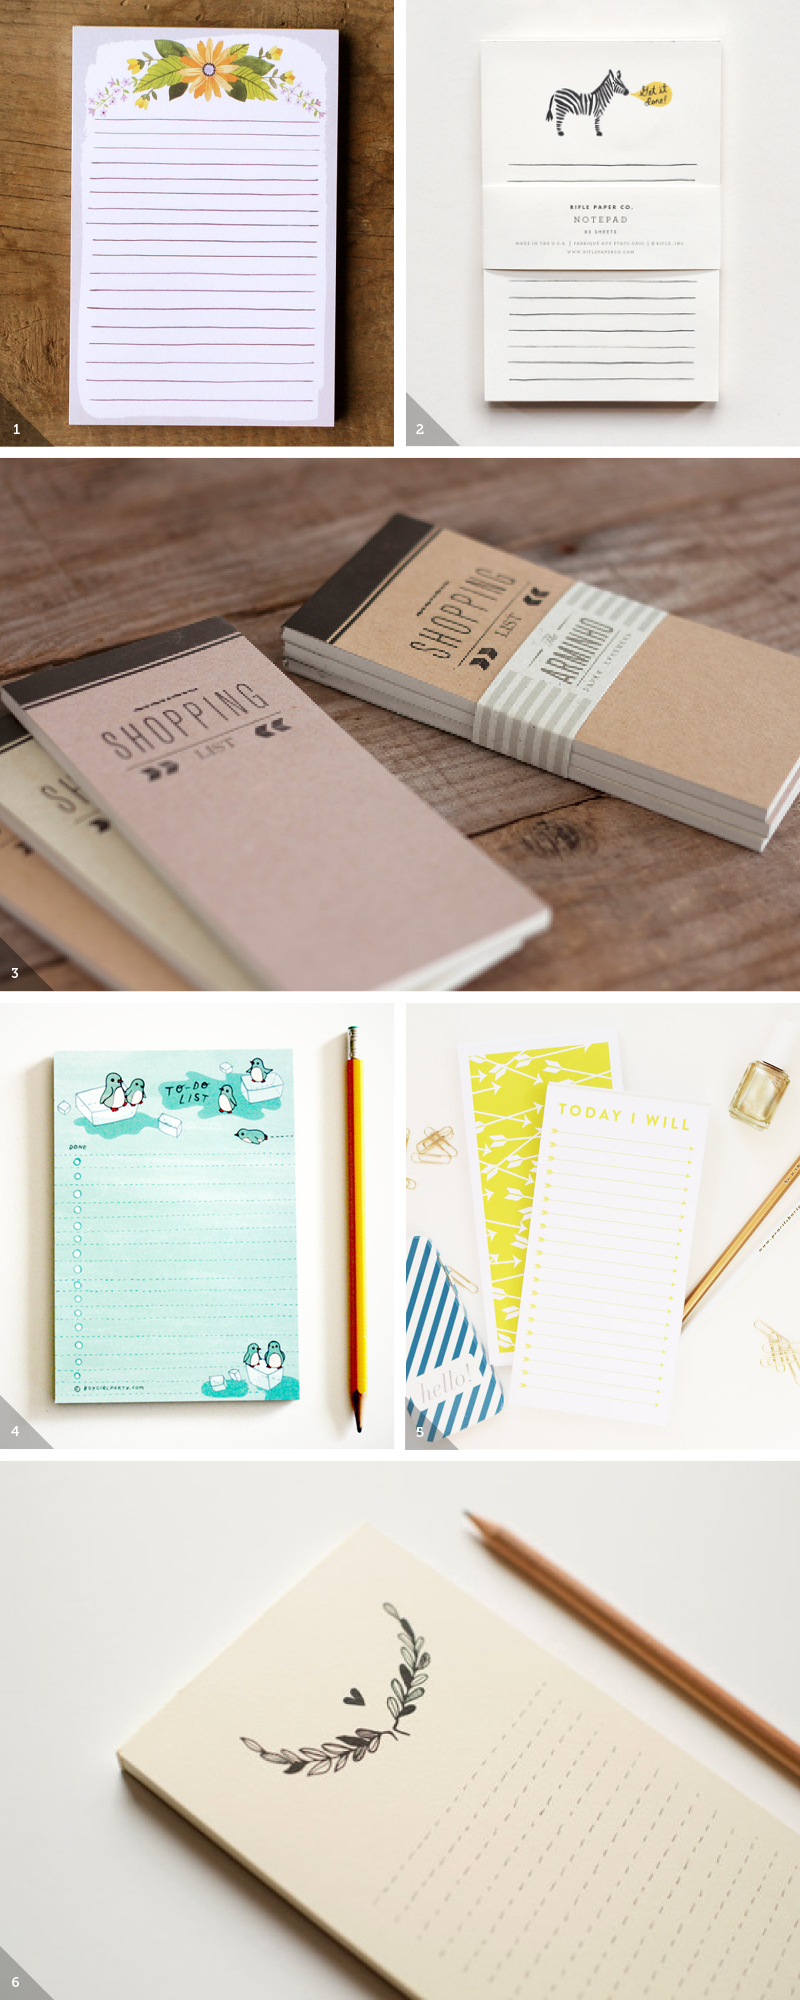 """1. Floral Watercolor Notepad2. """"Get It Done"""" Notepad3. Letterpress Shopping List Notepad4. Penguin To Do List5. Arrow To Do List6. Black Wreath Notepad"""